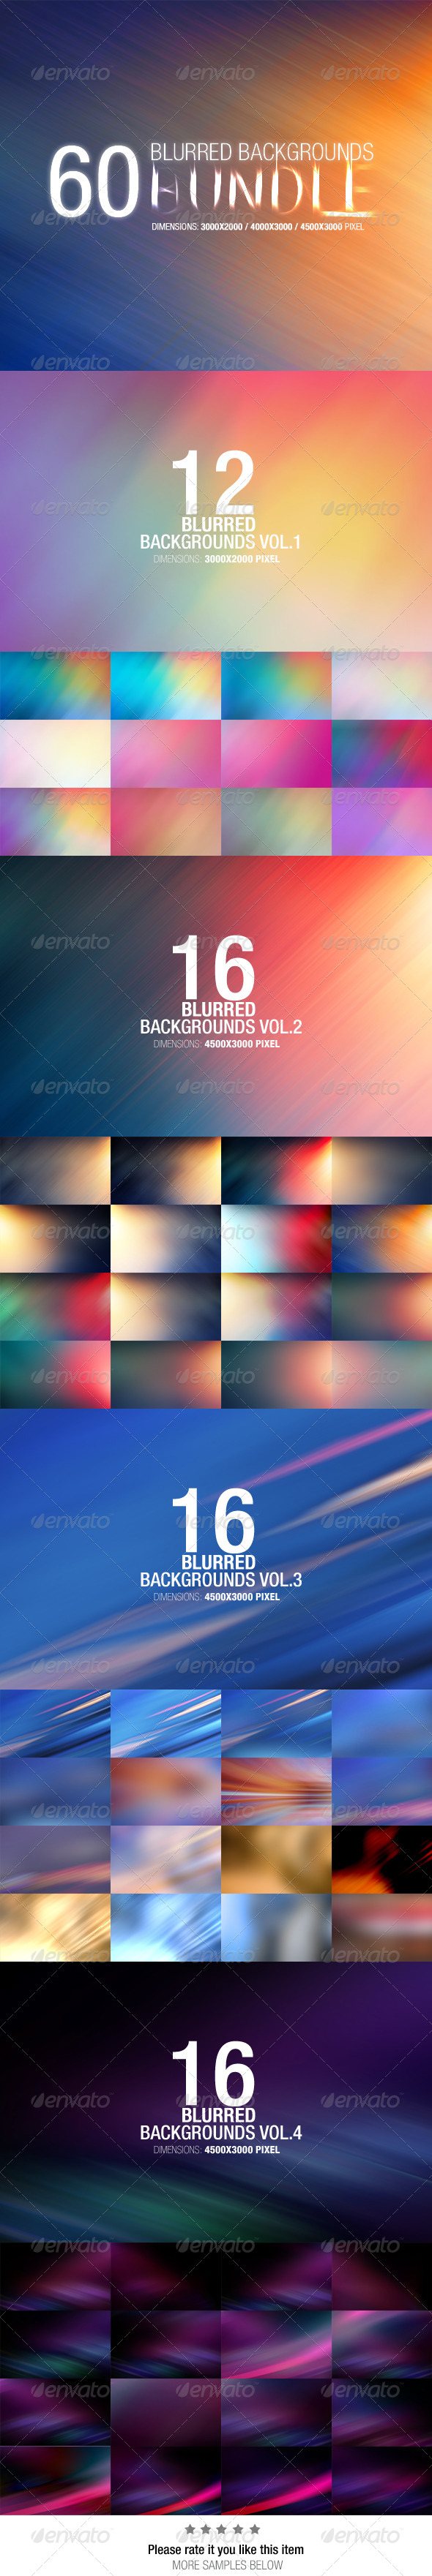 GraphicRiver 60 Blurred Backgrounds Bundle 7606537